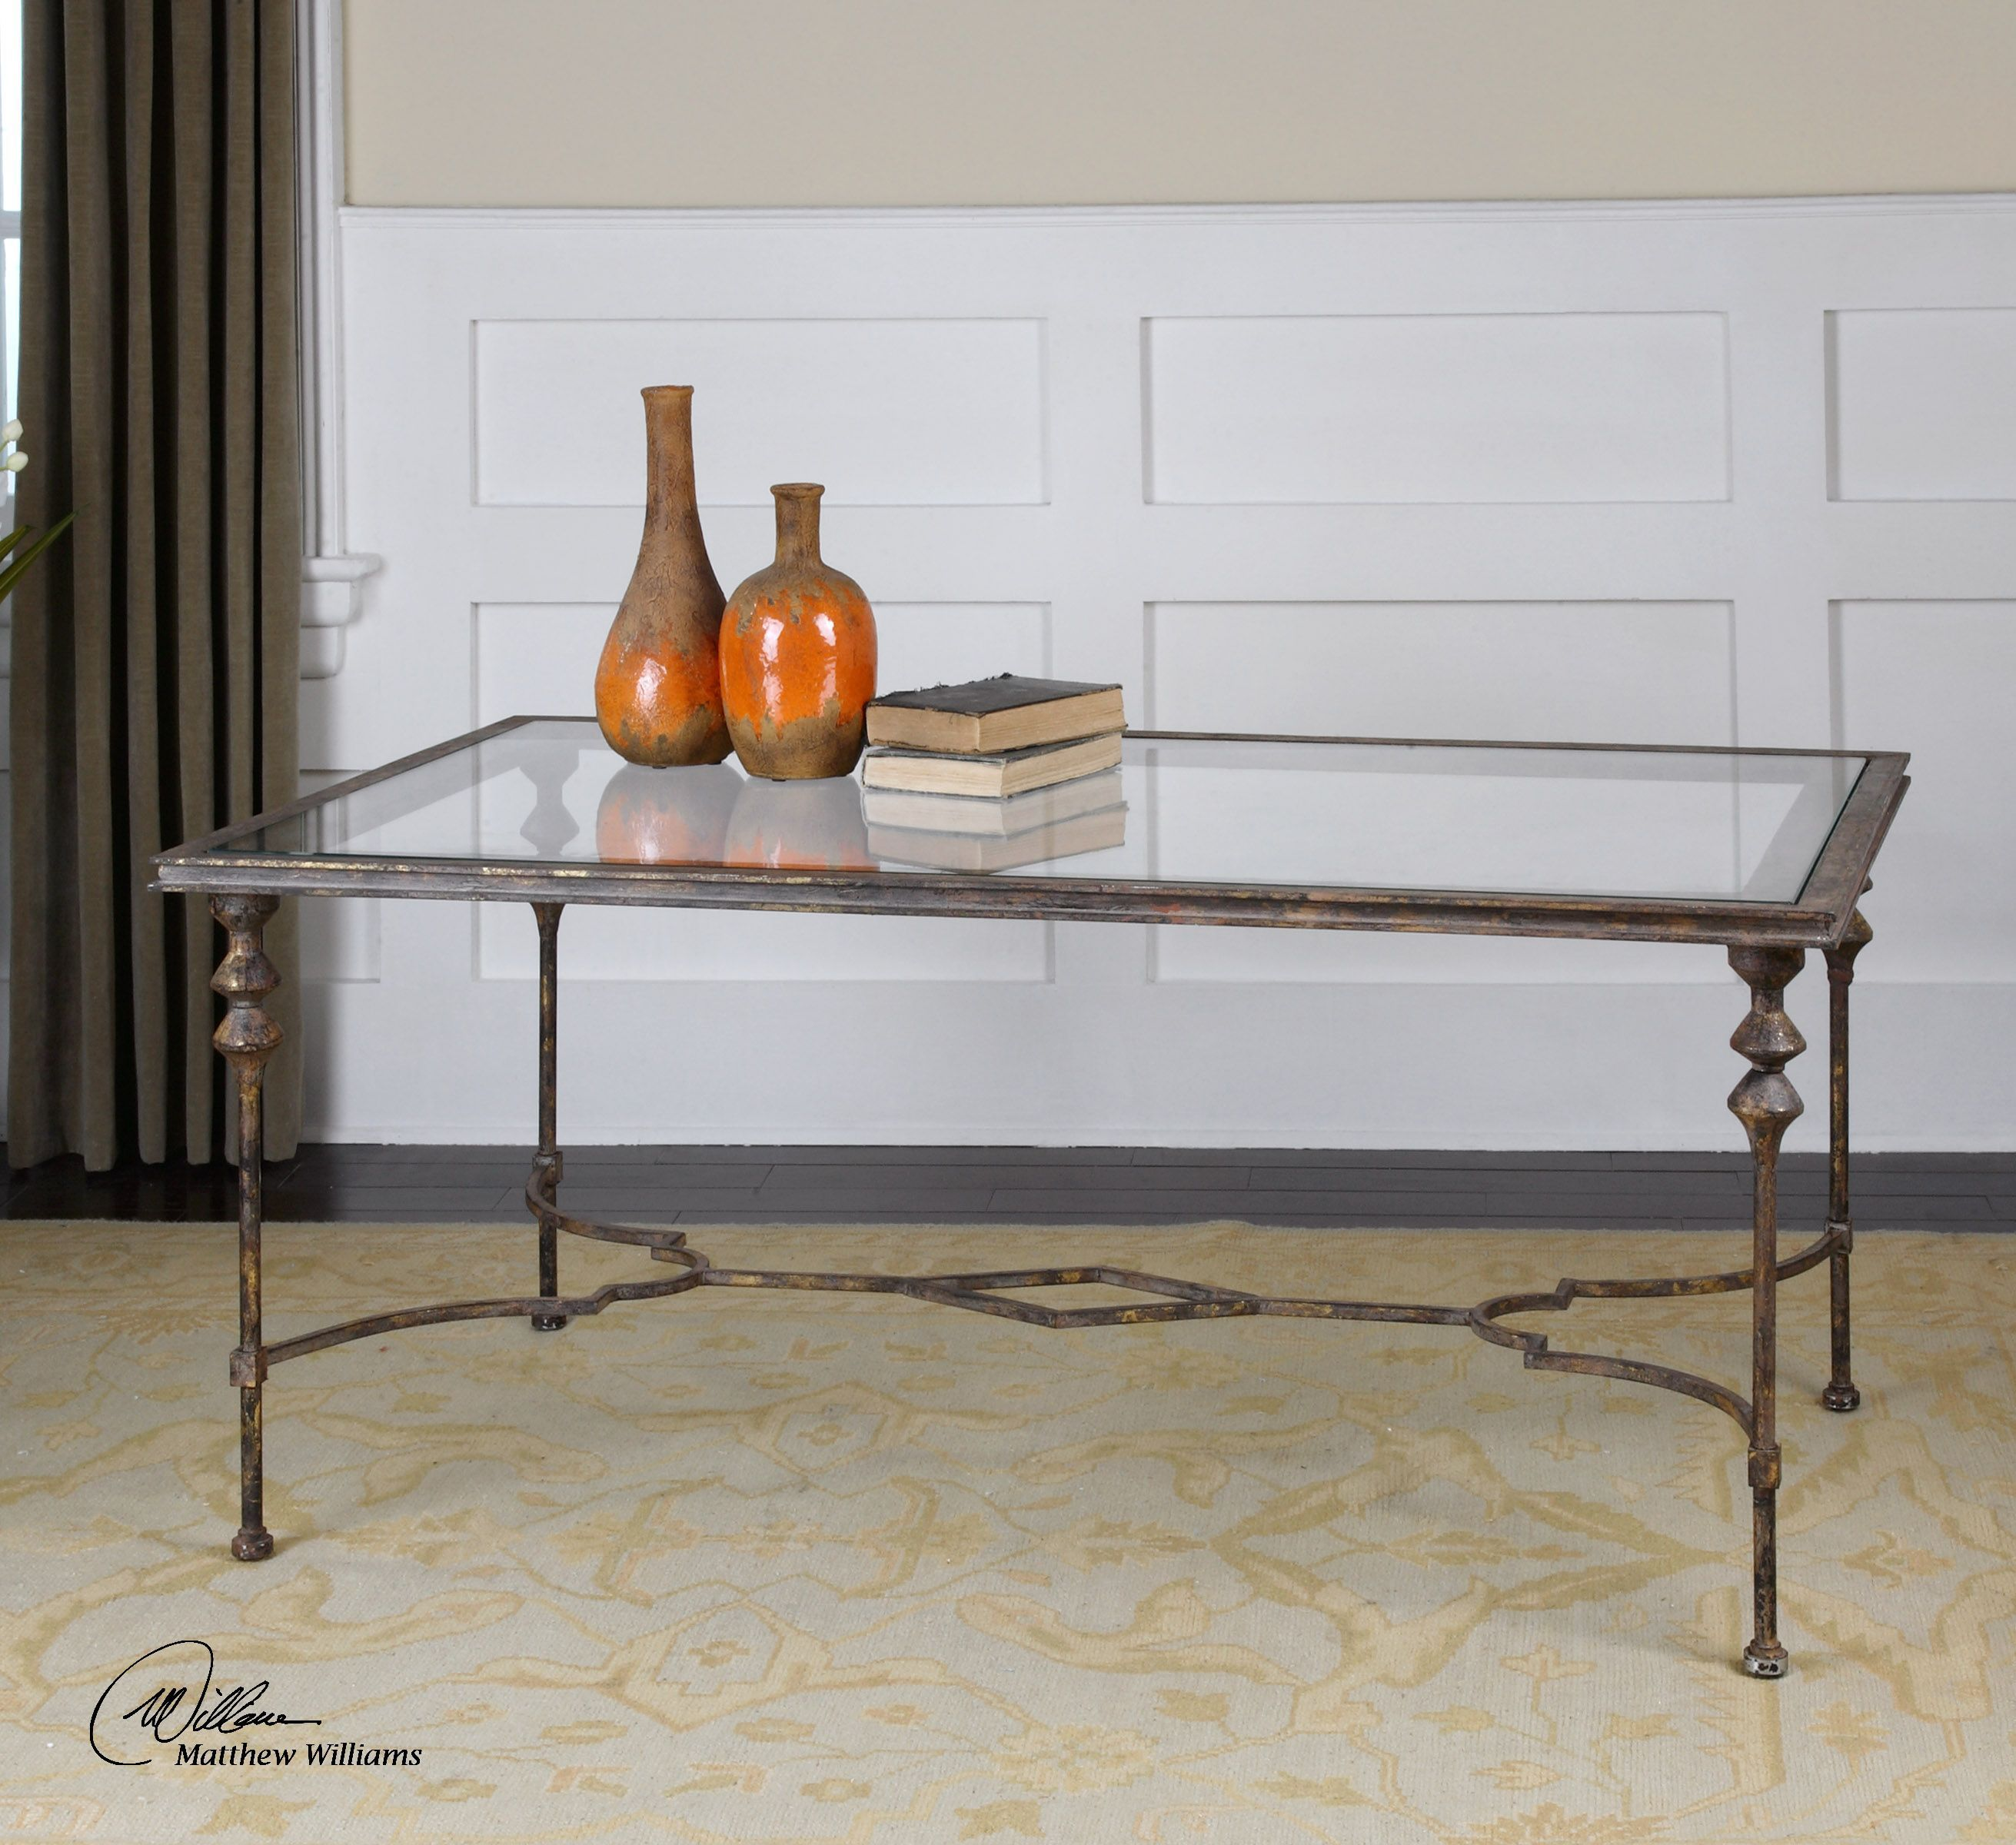 Uttermost Quillon Glass Coffee Table 24364 Coffee Table Furniture Uttermost Furniture [ 2400 x 2622 Pixel ]